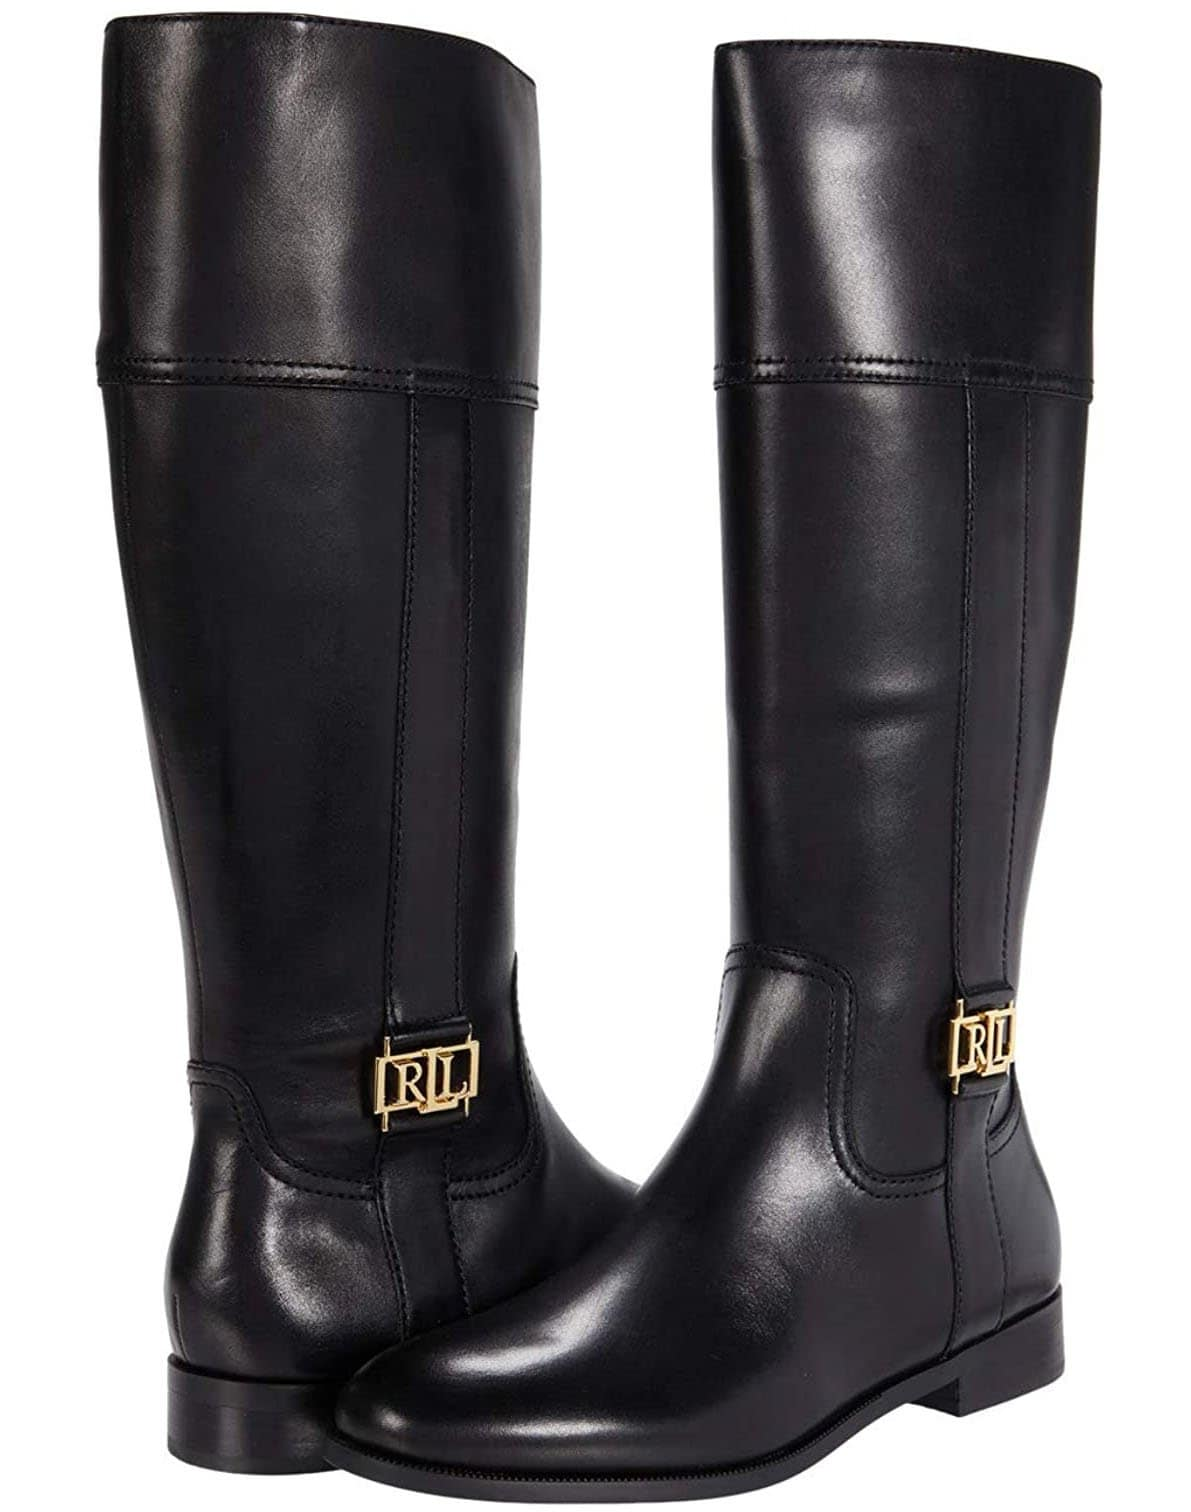 Ralph Lauren's classic minimalist Berdie boots feature the brand's signature gold-tone LRL logo hardware on the sides